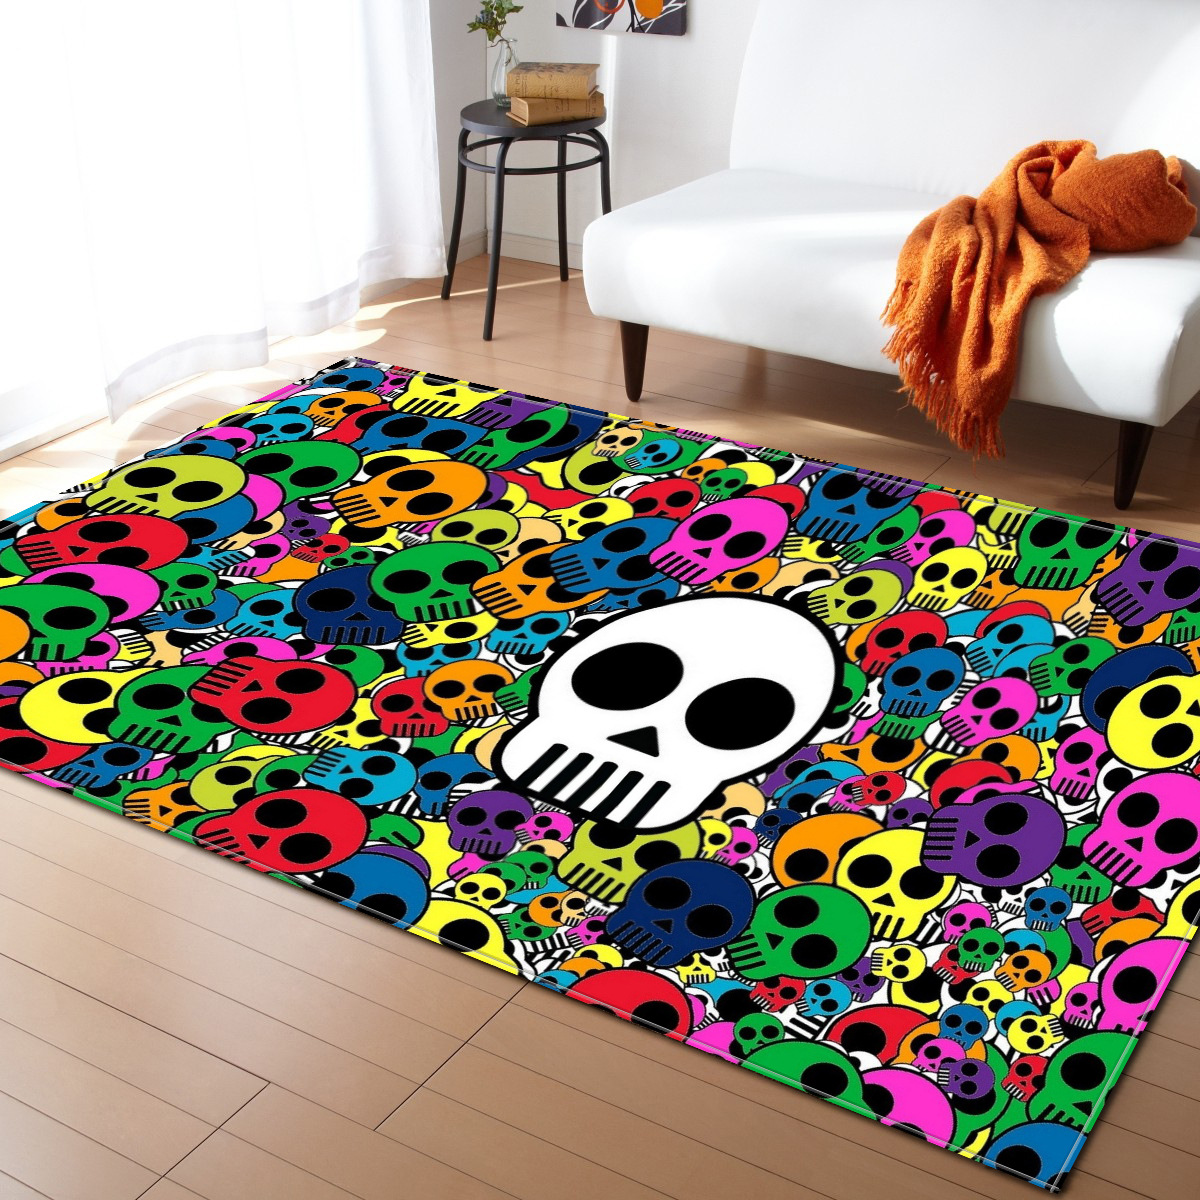 Us 35 0 30 Off Skull Printed Rugs Kids Room Play Carpet Baby Crawl Mats Flannel Carpets For Living Party Decor Area Rug In